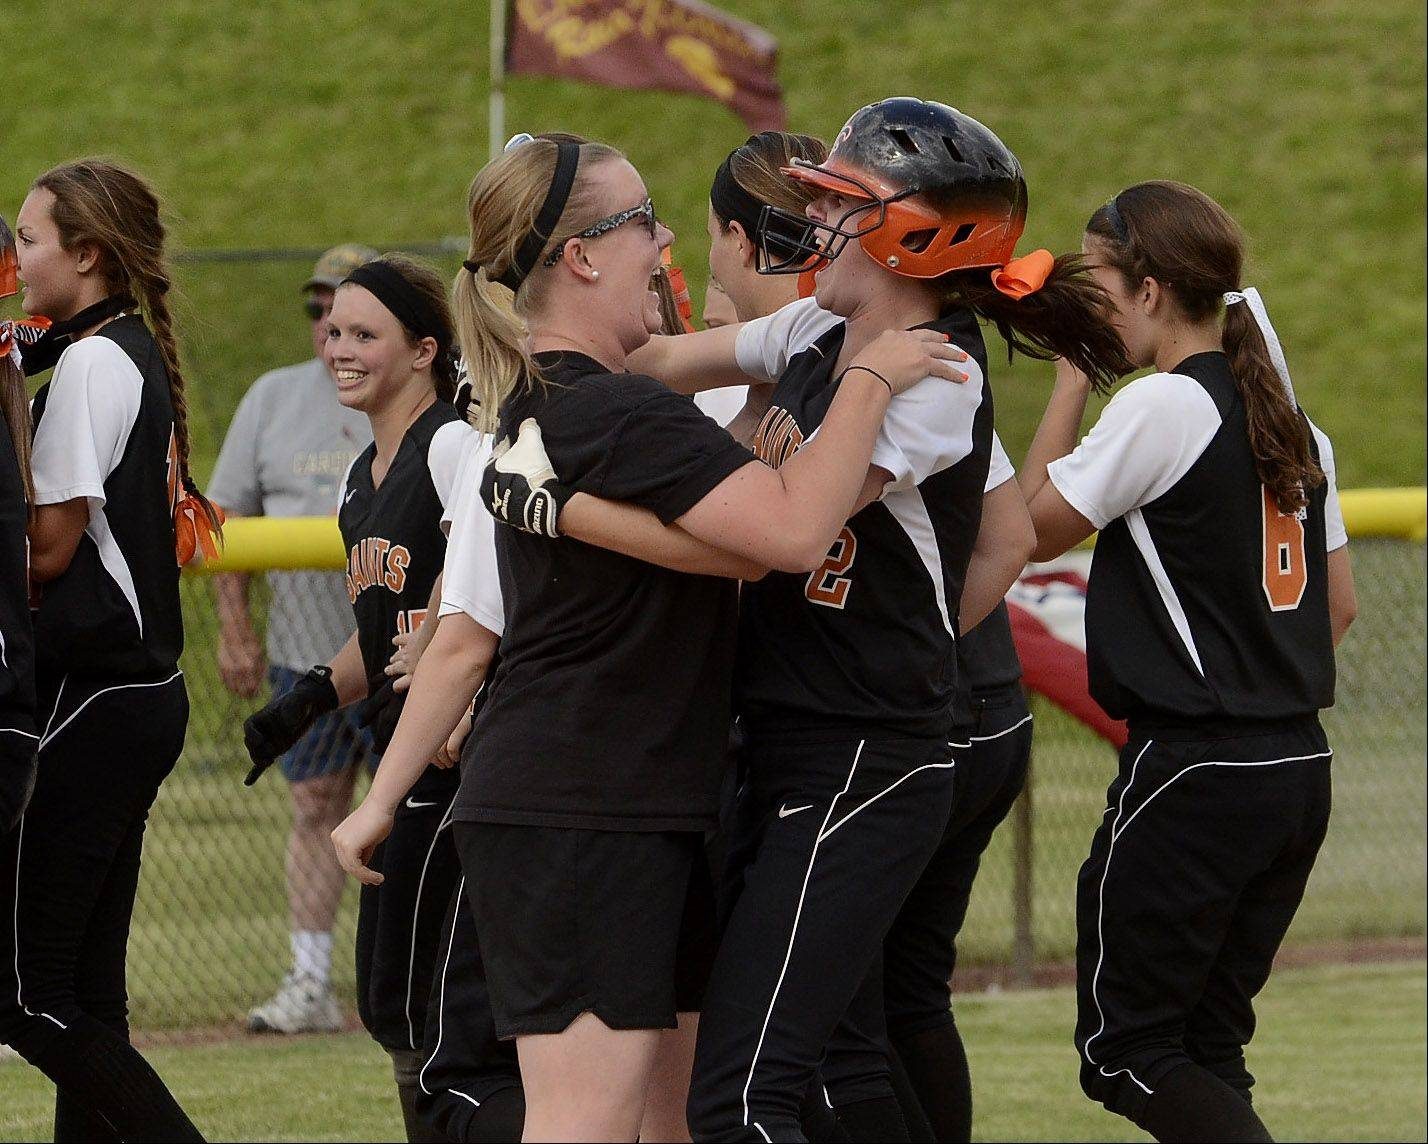 St. Charles East assistant coach Sarah Seward, left, embraces Olivia Lorenzini, after her 2-run game winning double in the bottom of the seventh inning defeats Barrington in the Class 4A state semifinals Friday.